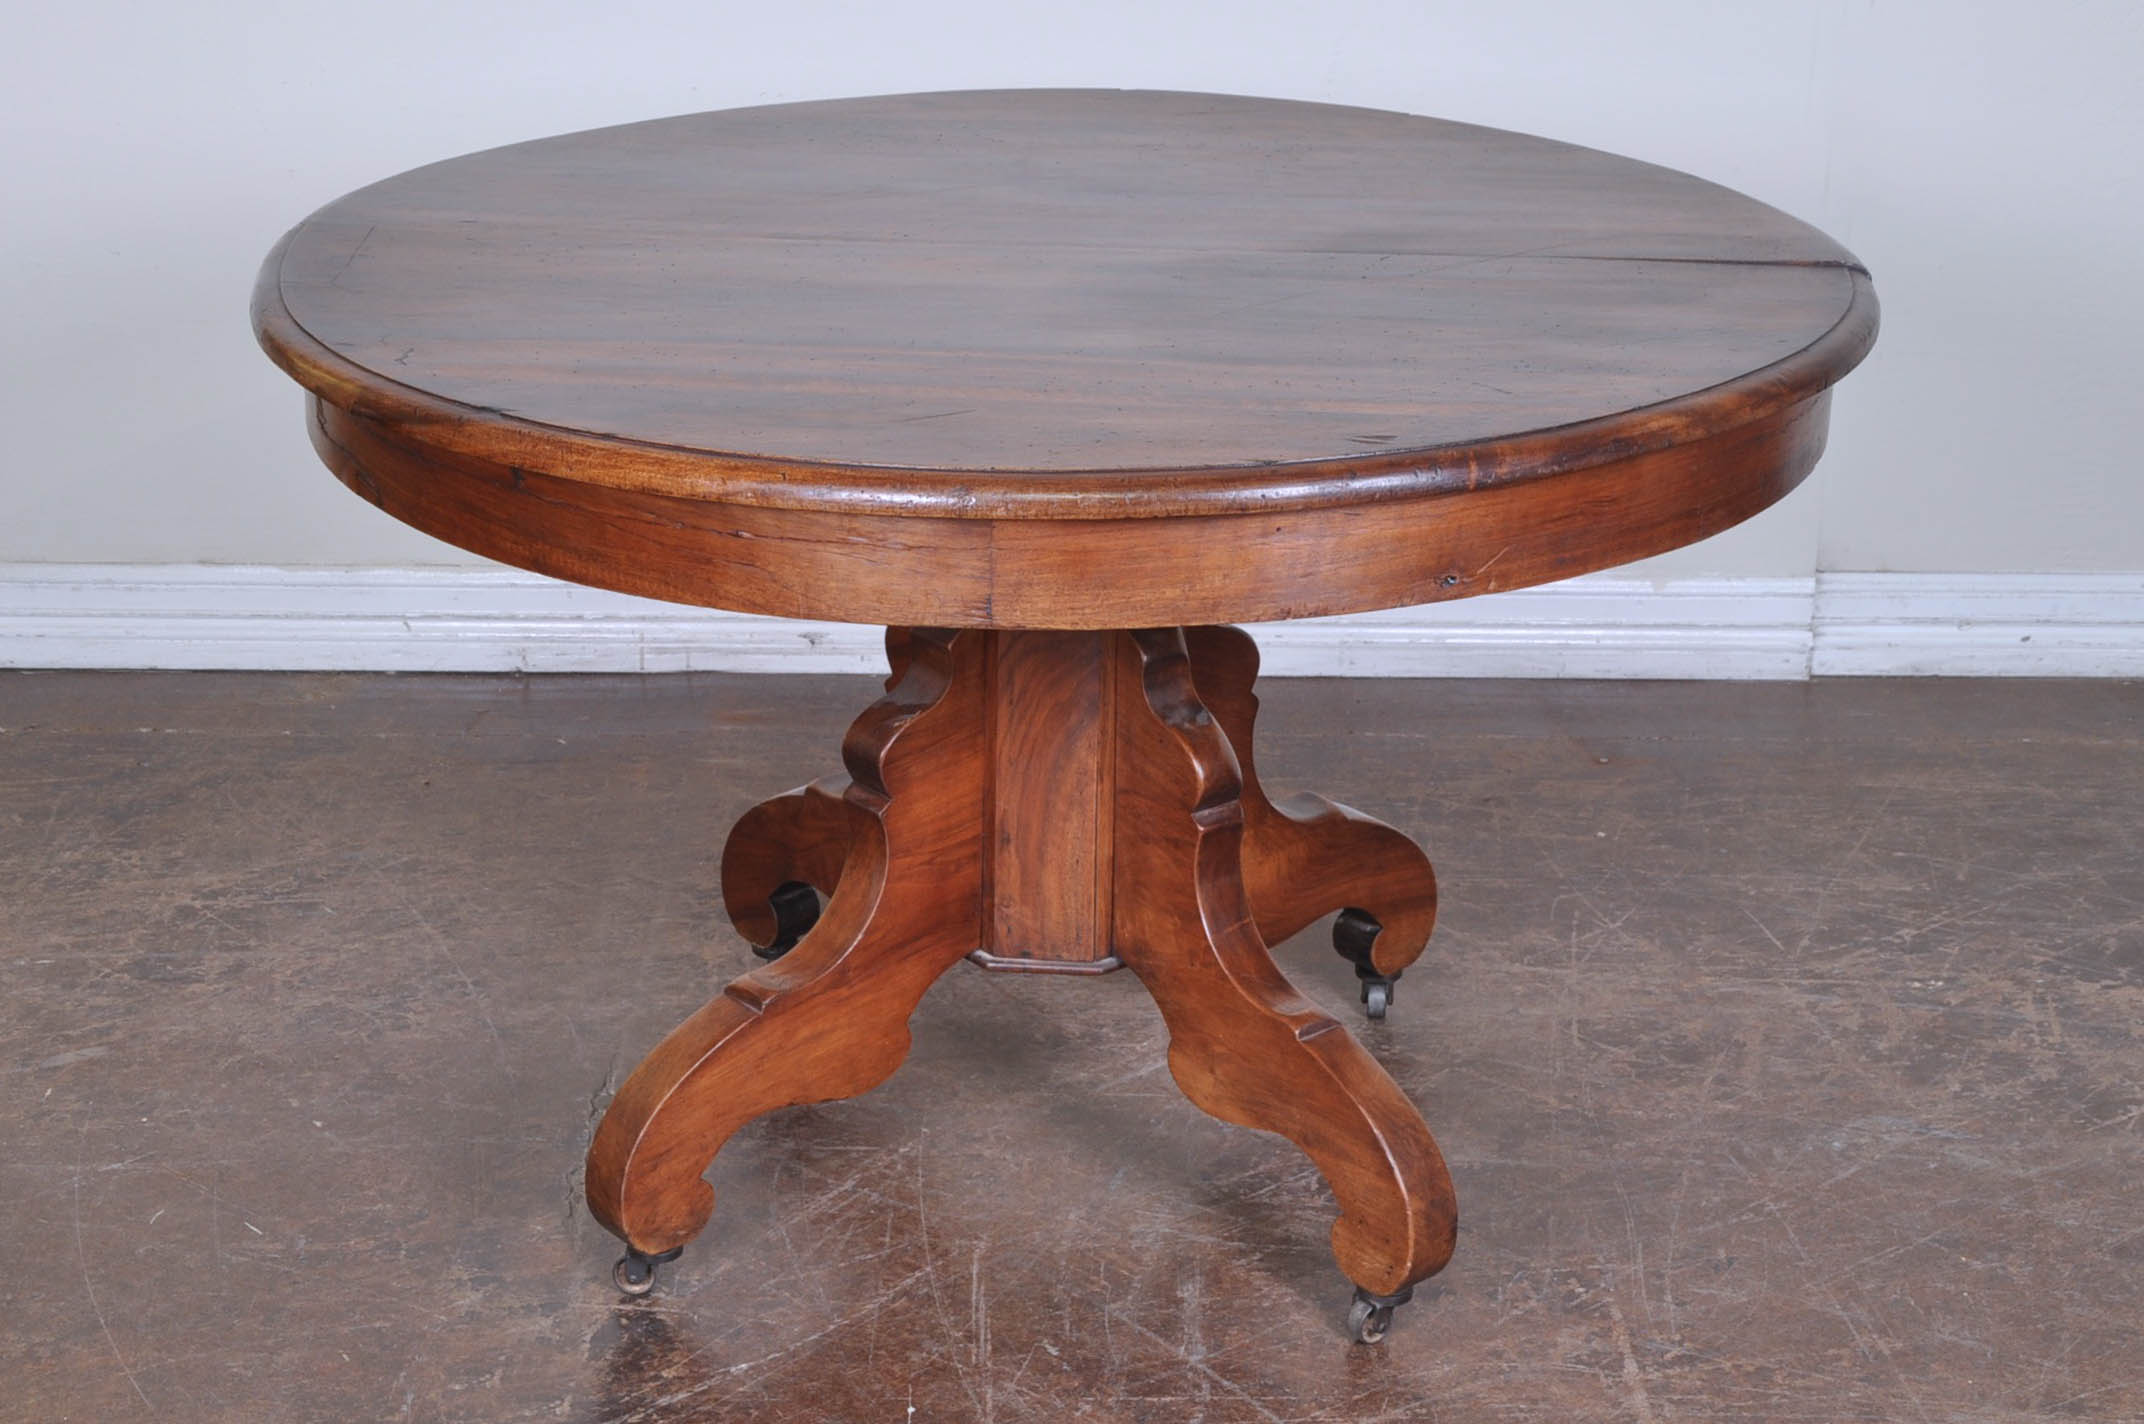 Antique French Round Wooden Table On Pedestal Base With Original Caster Feet